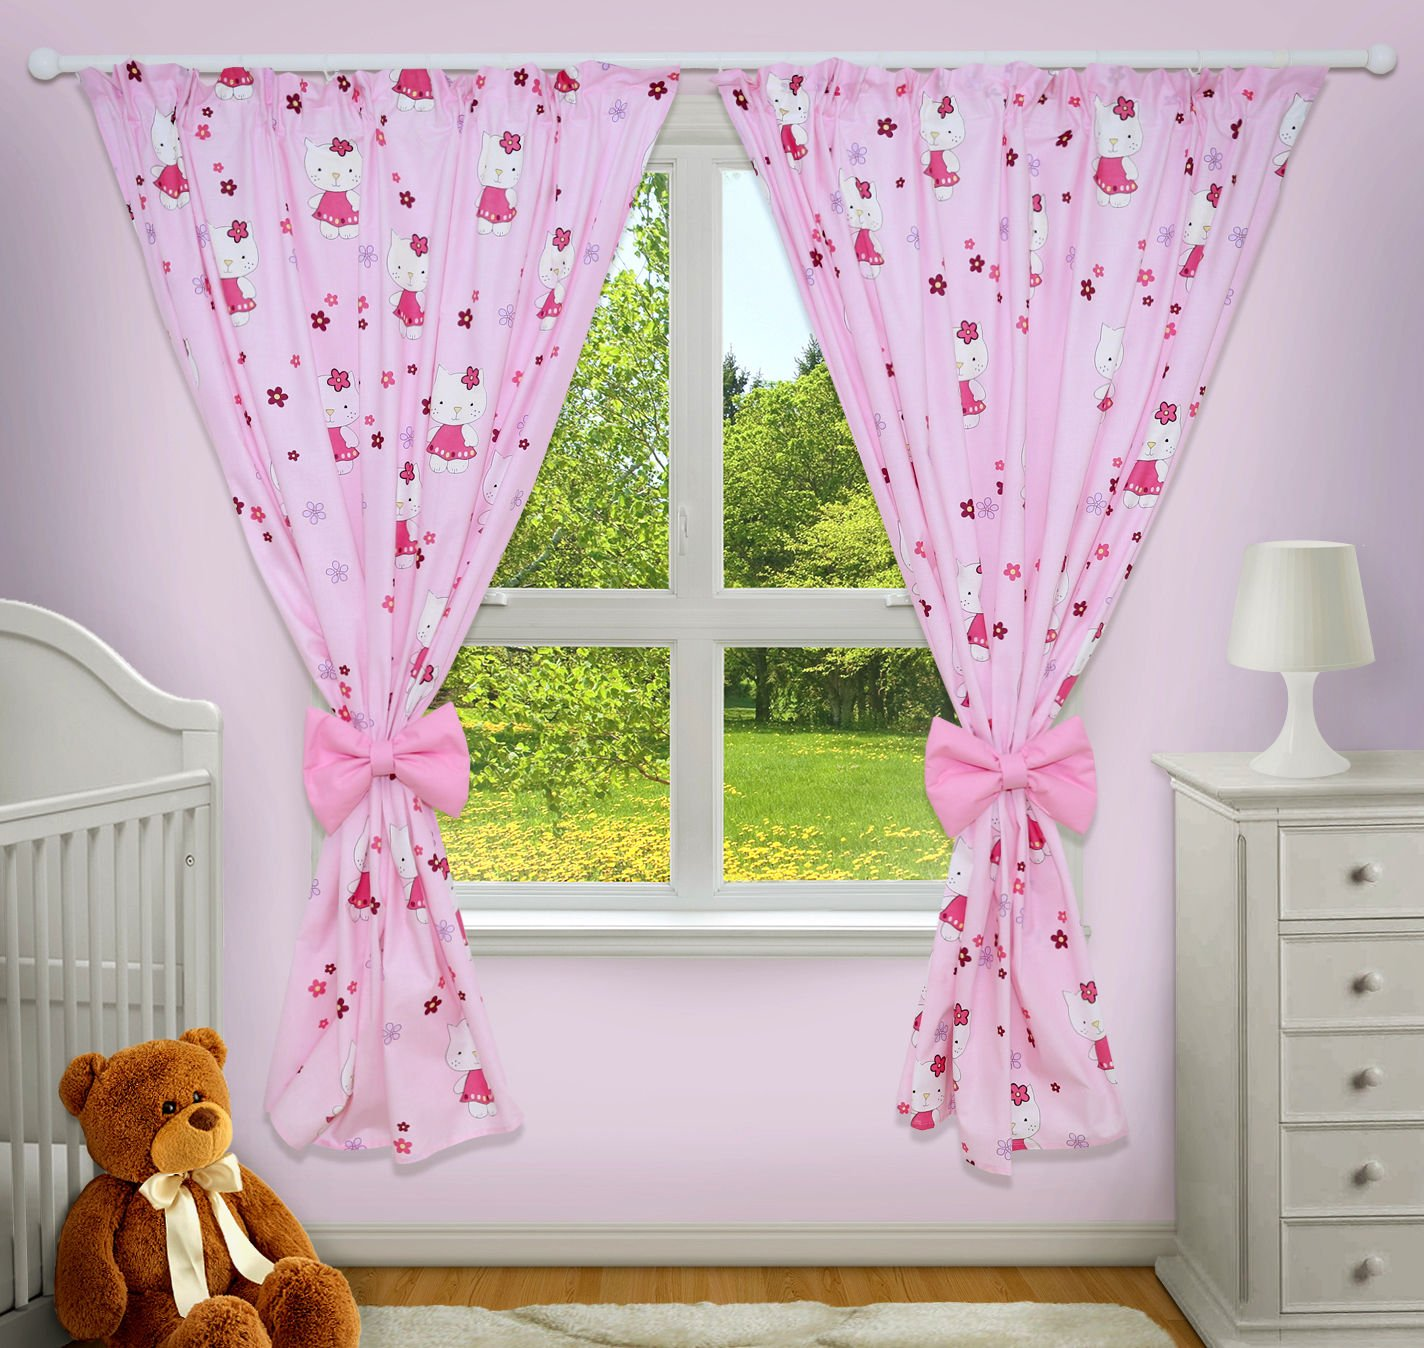 LUXURY DECORATIVE CURTAINS FOR BABY ROOM MATCHING WITH OUR NURSERY BEDDING SETS (Big stars grey) TheLittles24